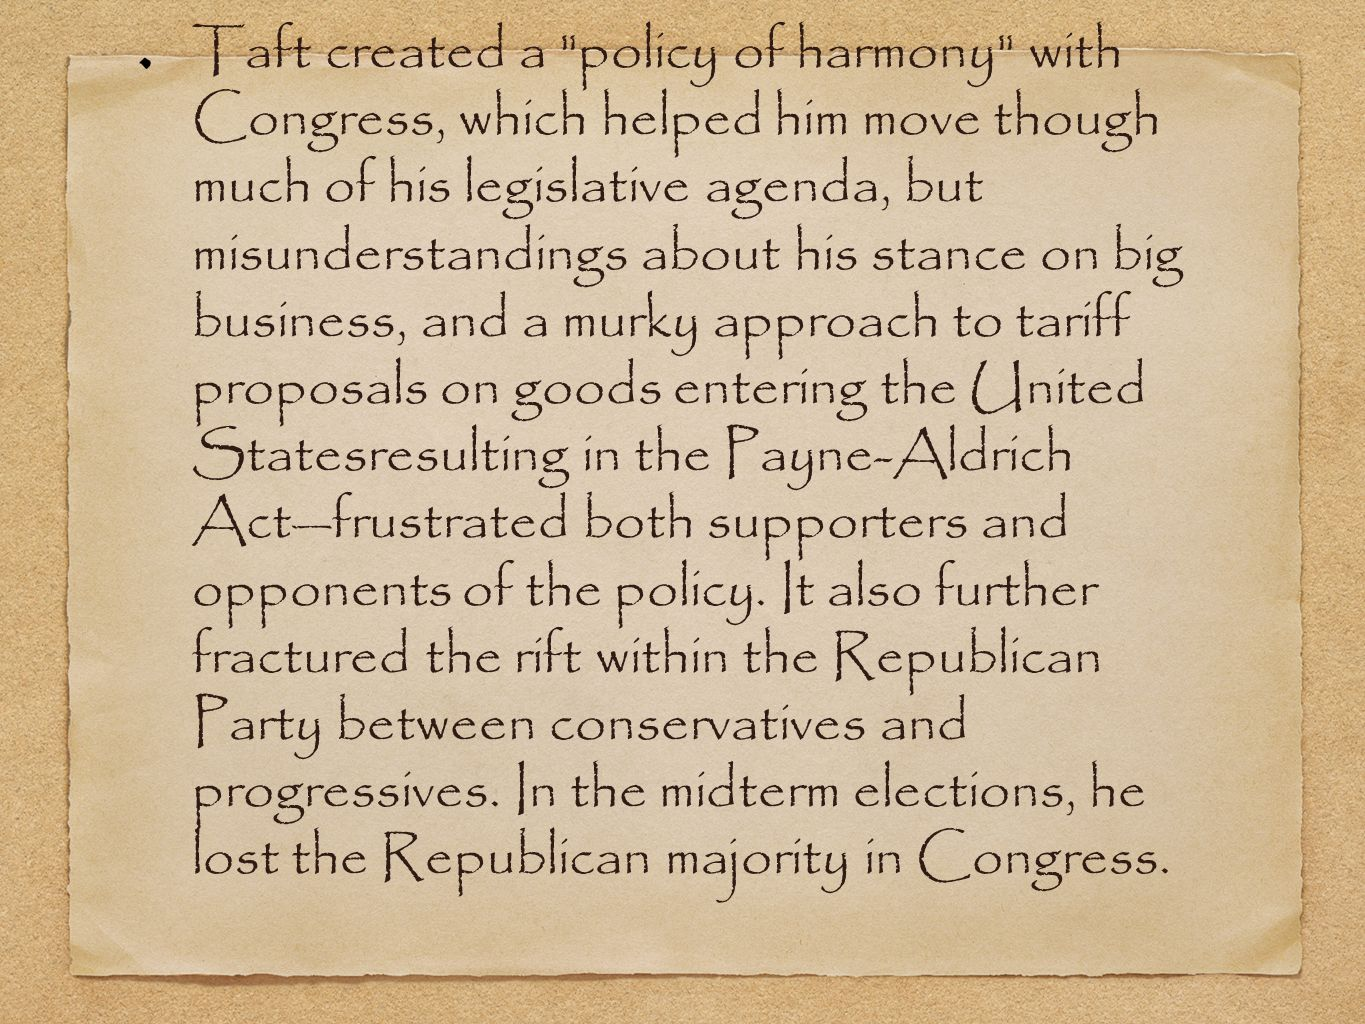 Taft created a policy of harmony with Congress, which helped him move though much of his legislative agenda, but misunderstandings about his stance on big business, and a murky approach to tariff proposals on goods entering the United Statesresulting in the Payne-Aldrich Actfrustrated both supporters and opponents of the policy.